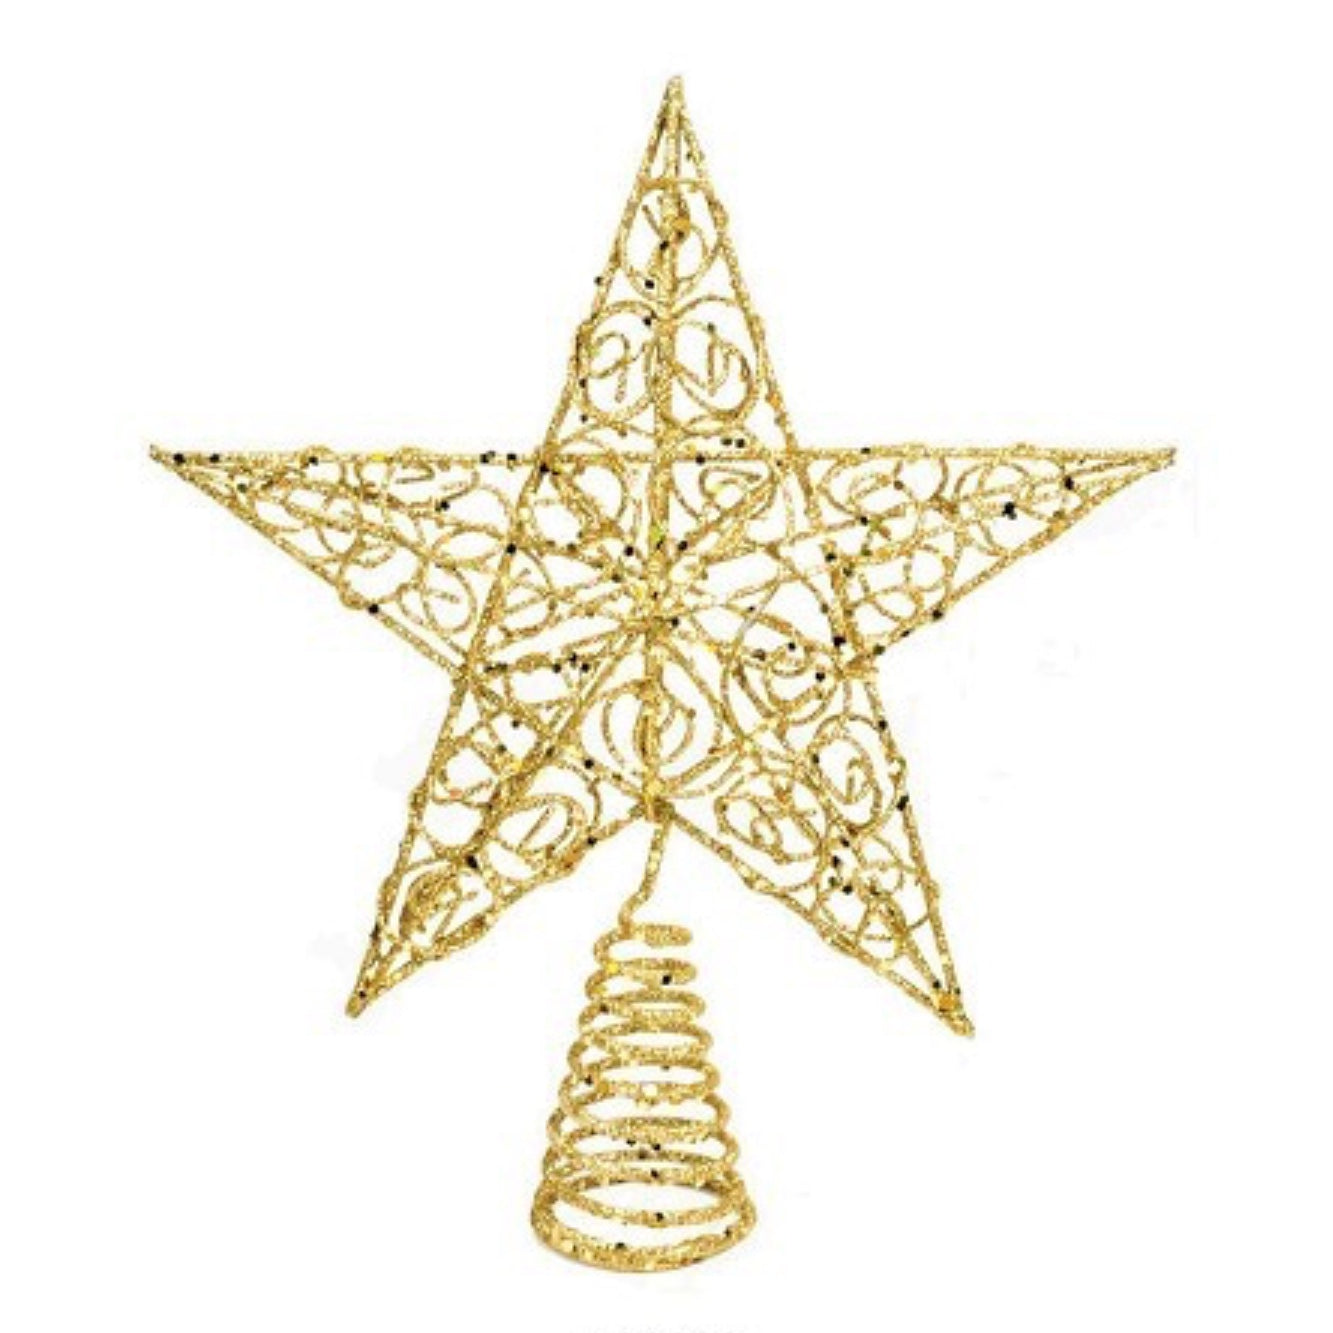 Gold Glittered Wire Christmas Tree Topper with Circles | Putti Christmas Canada